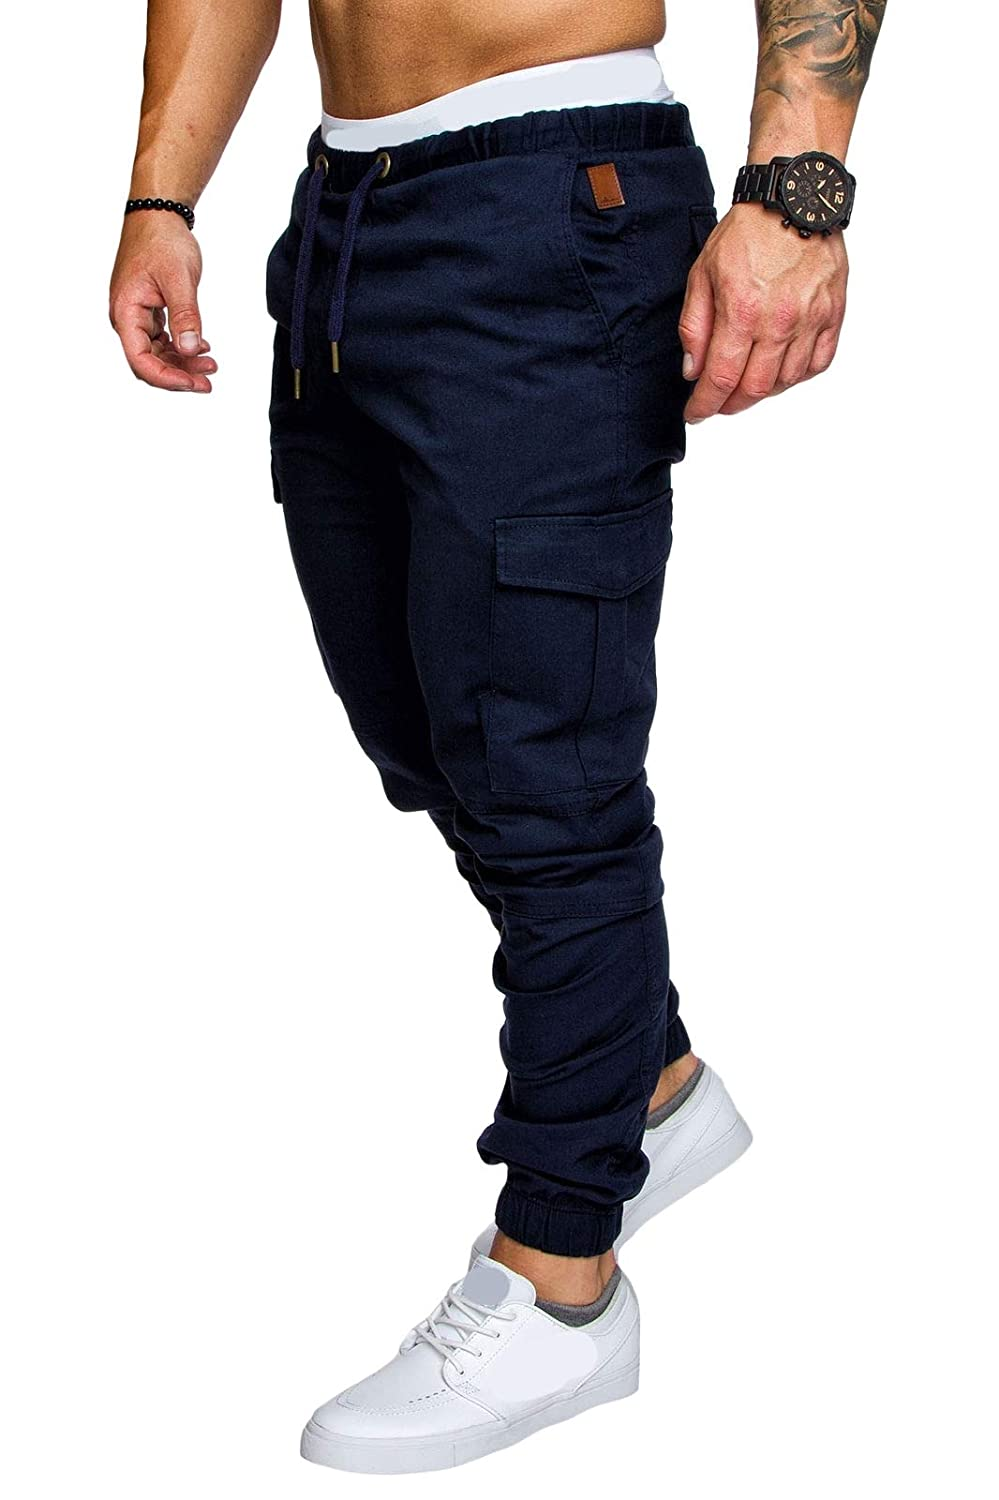 Winwinus Mens Leisure Oversized Solid Elastic Waist Drawstring Sweat Pants